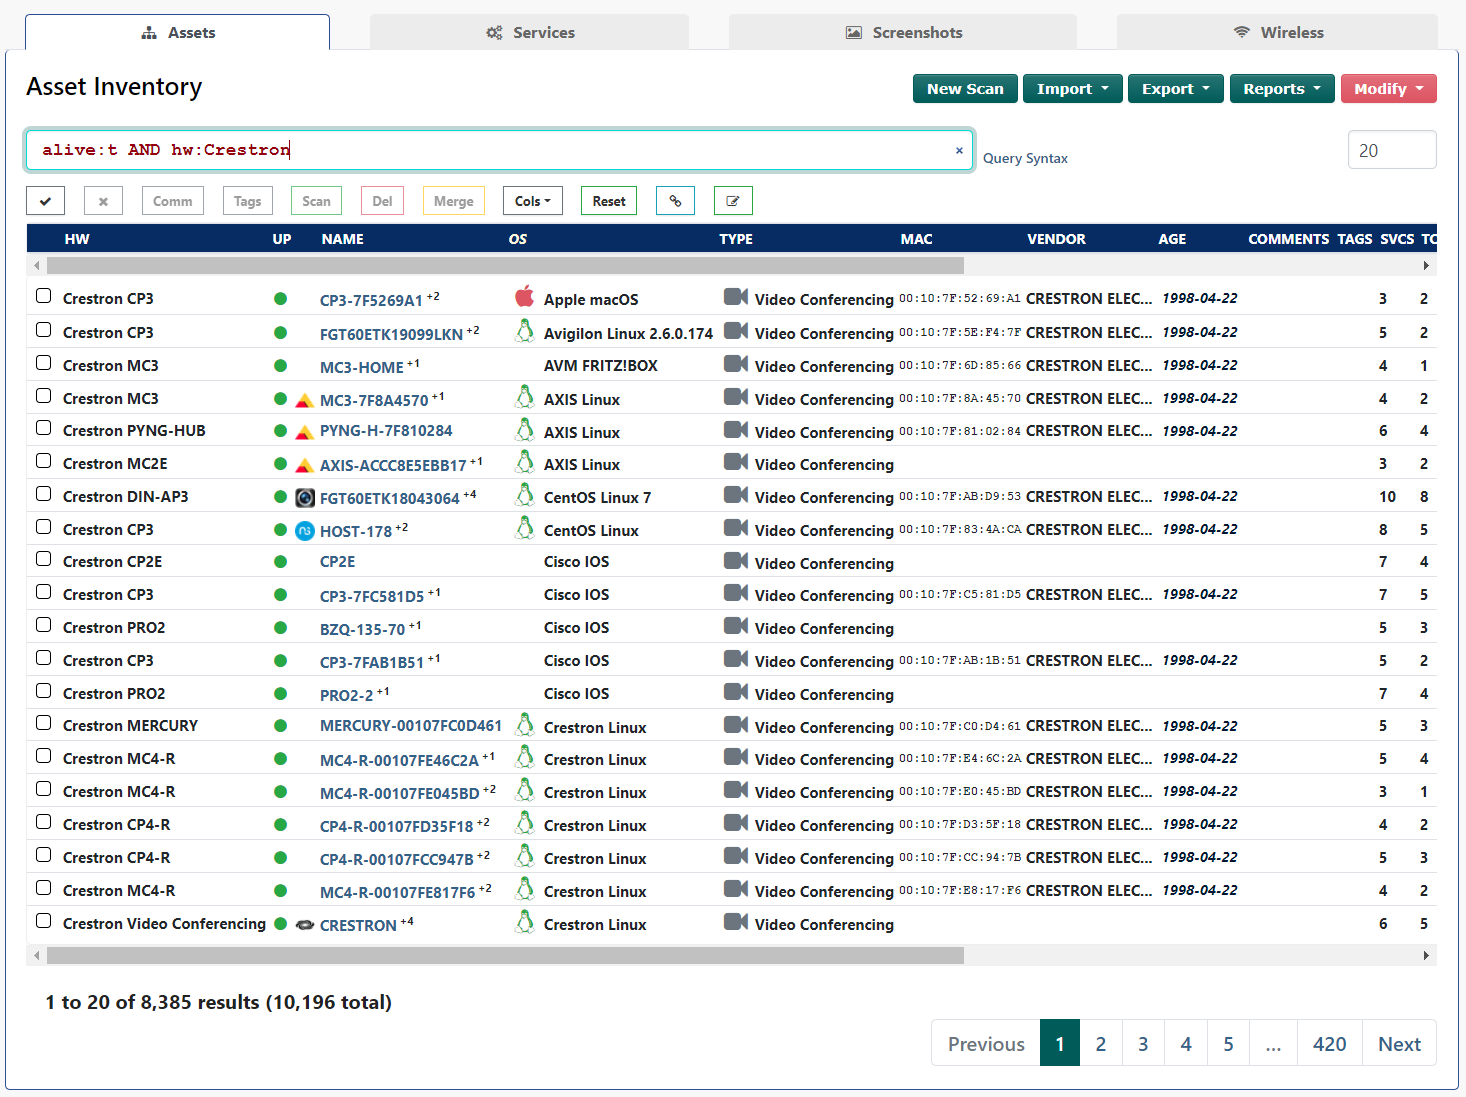 Screenshot of Rumble Crestron Identification